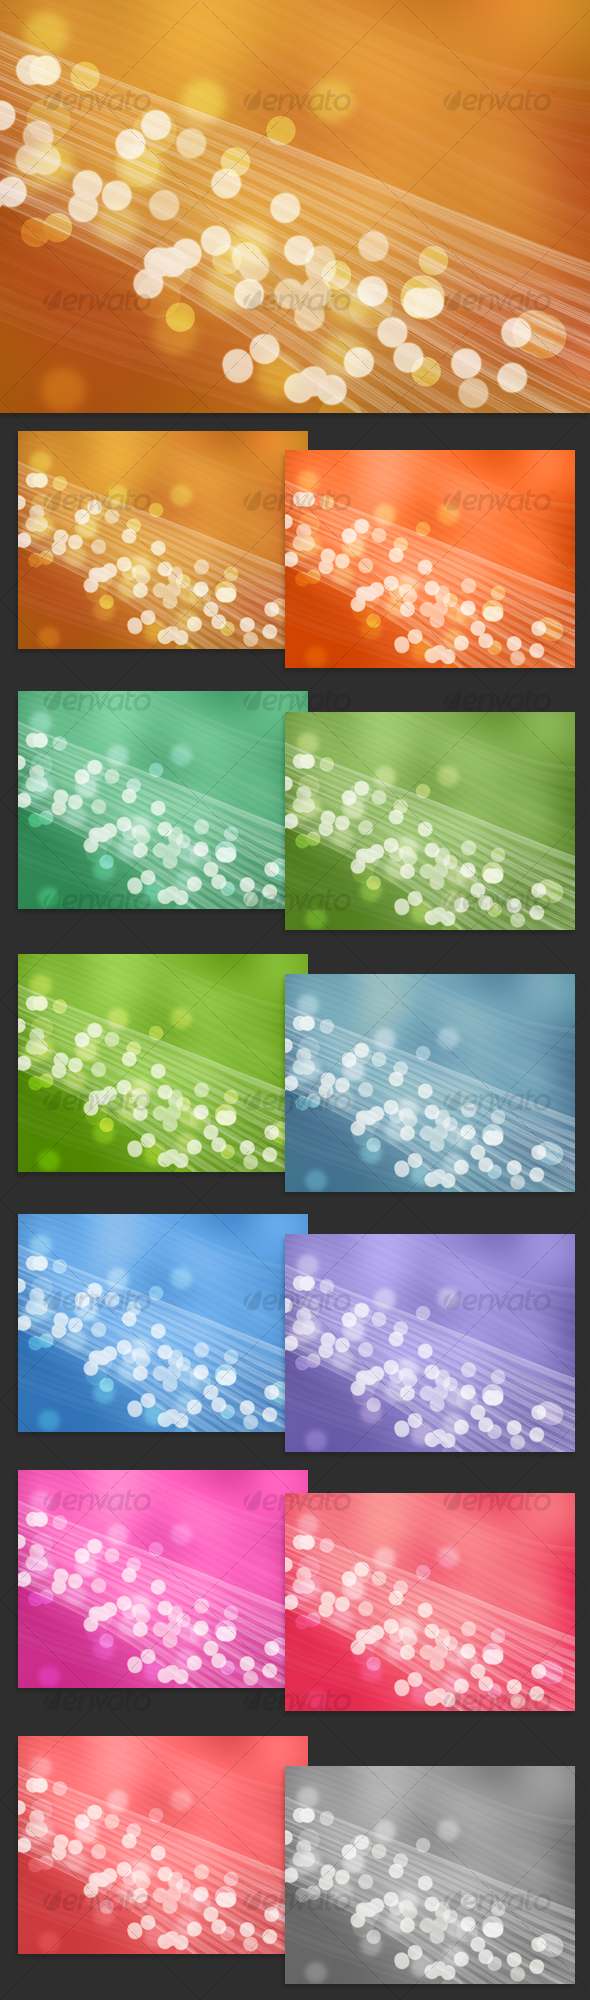 GraphicRiver Light Bubbles Abstract Background Pack 56685